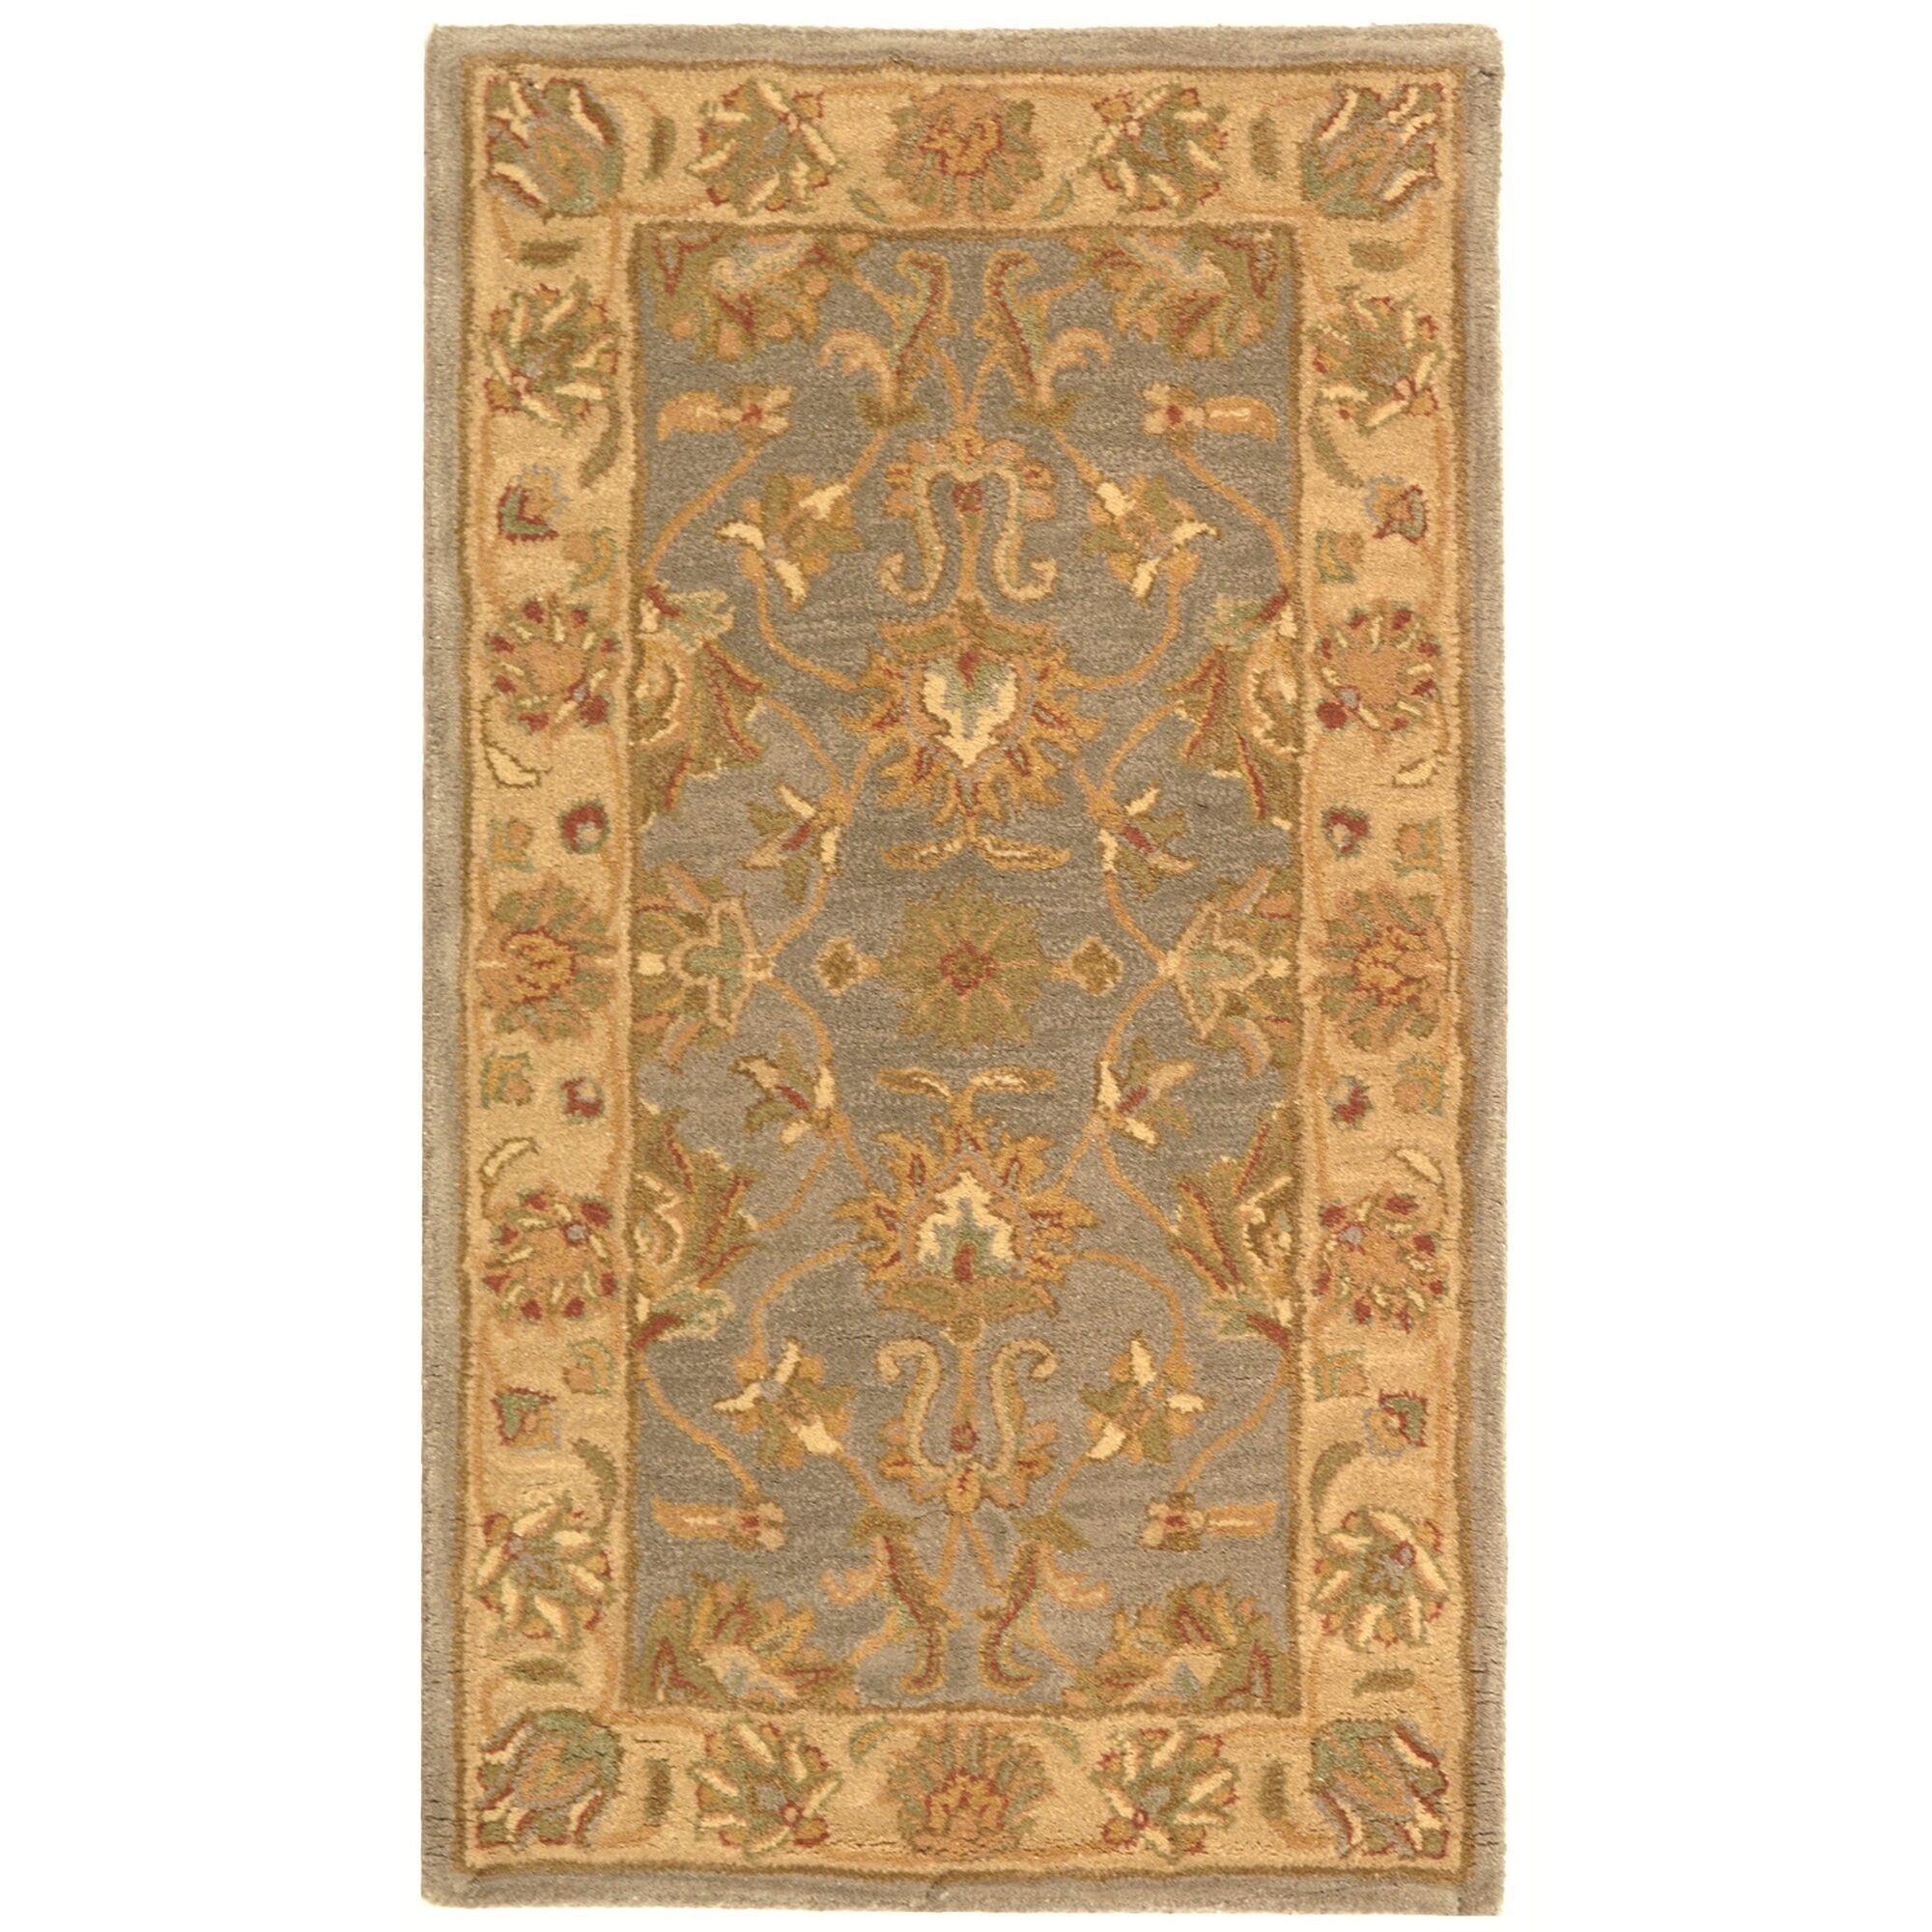 Cranmore Hand-Tufted Wool Blue/Beige Area Rug Rug Size: Rectangle 9'6